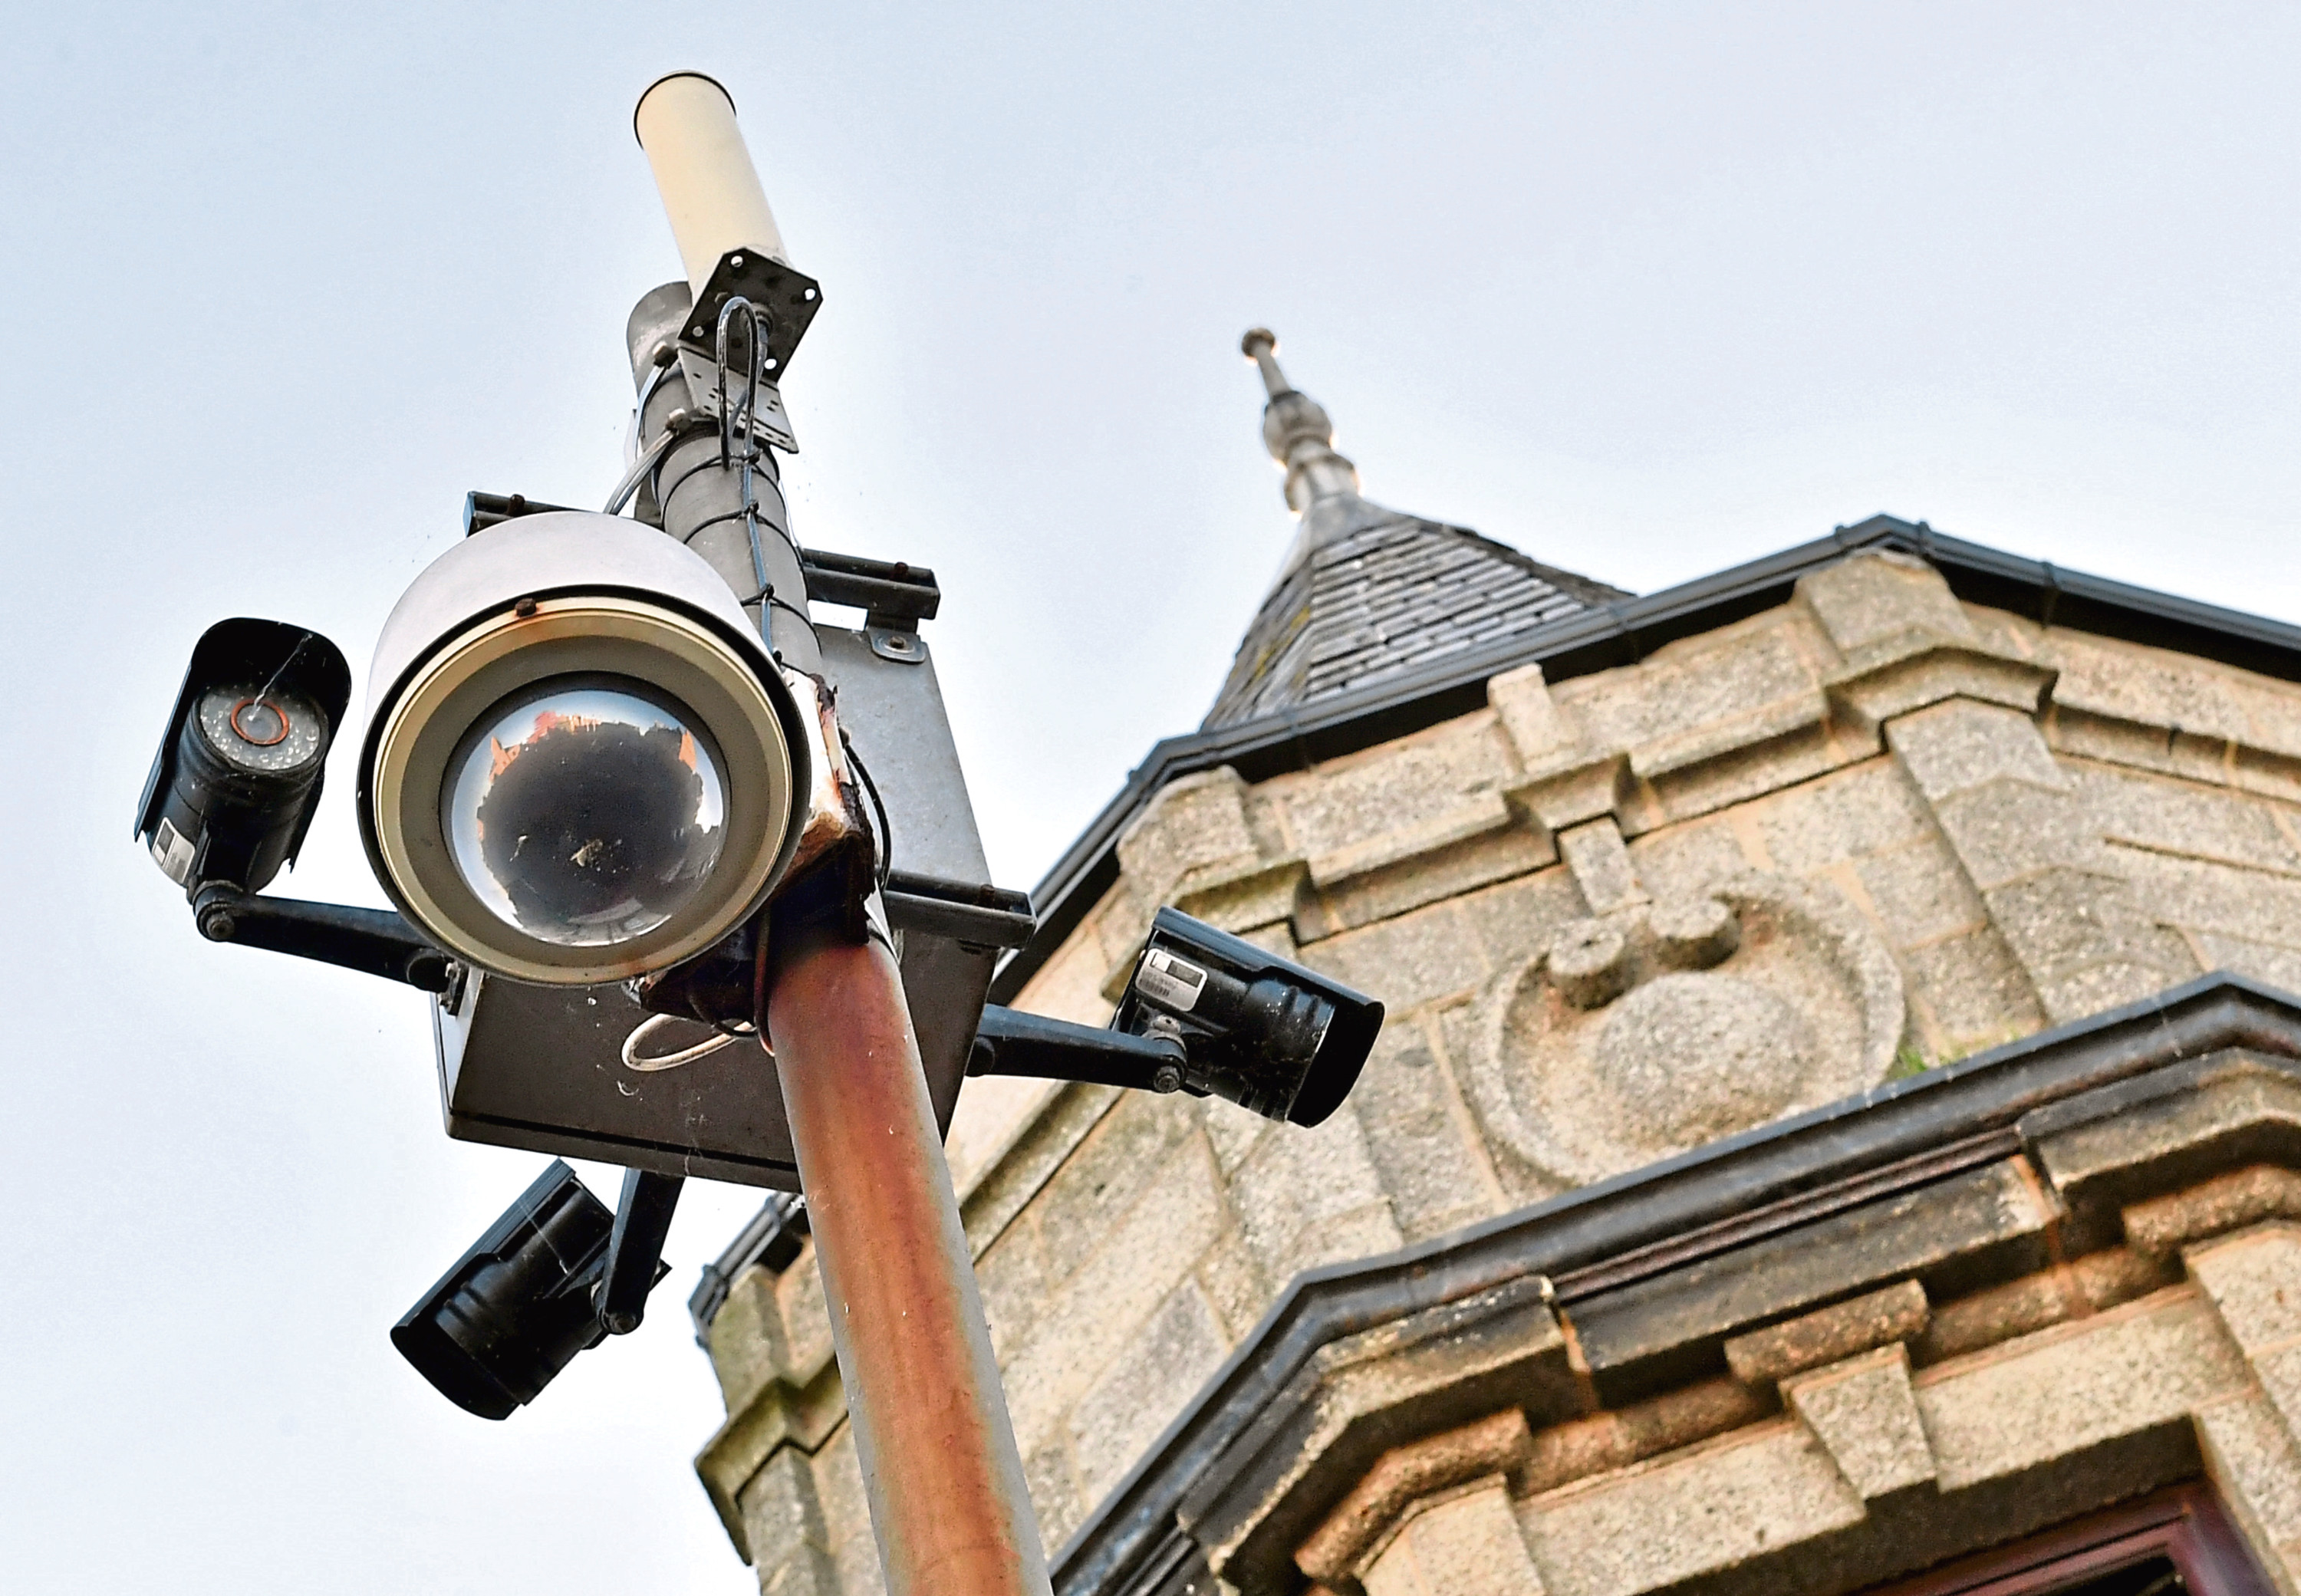 Brian Topping and Ricky Sheaffe-Greene of the Fraserburgh CCTV Working Group are looking to raise £10k to add to a grant of £60k for a new CCTV system in the village Picture by Kami Thomson    17-10-18